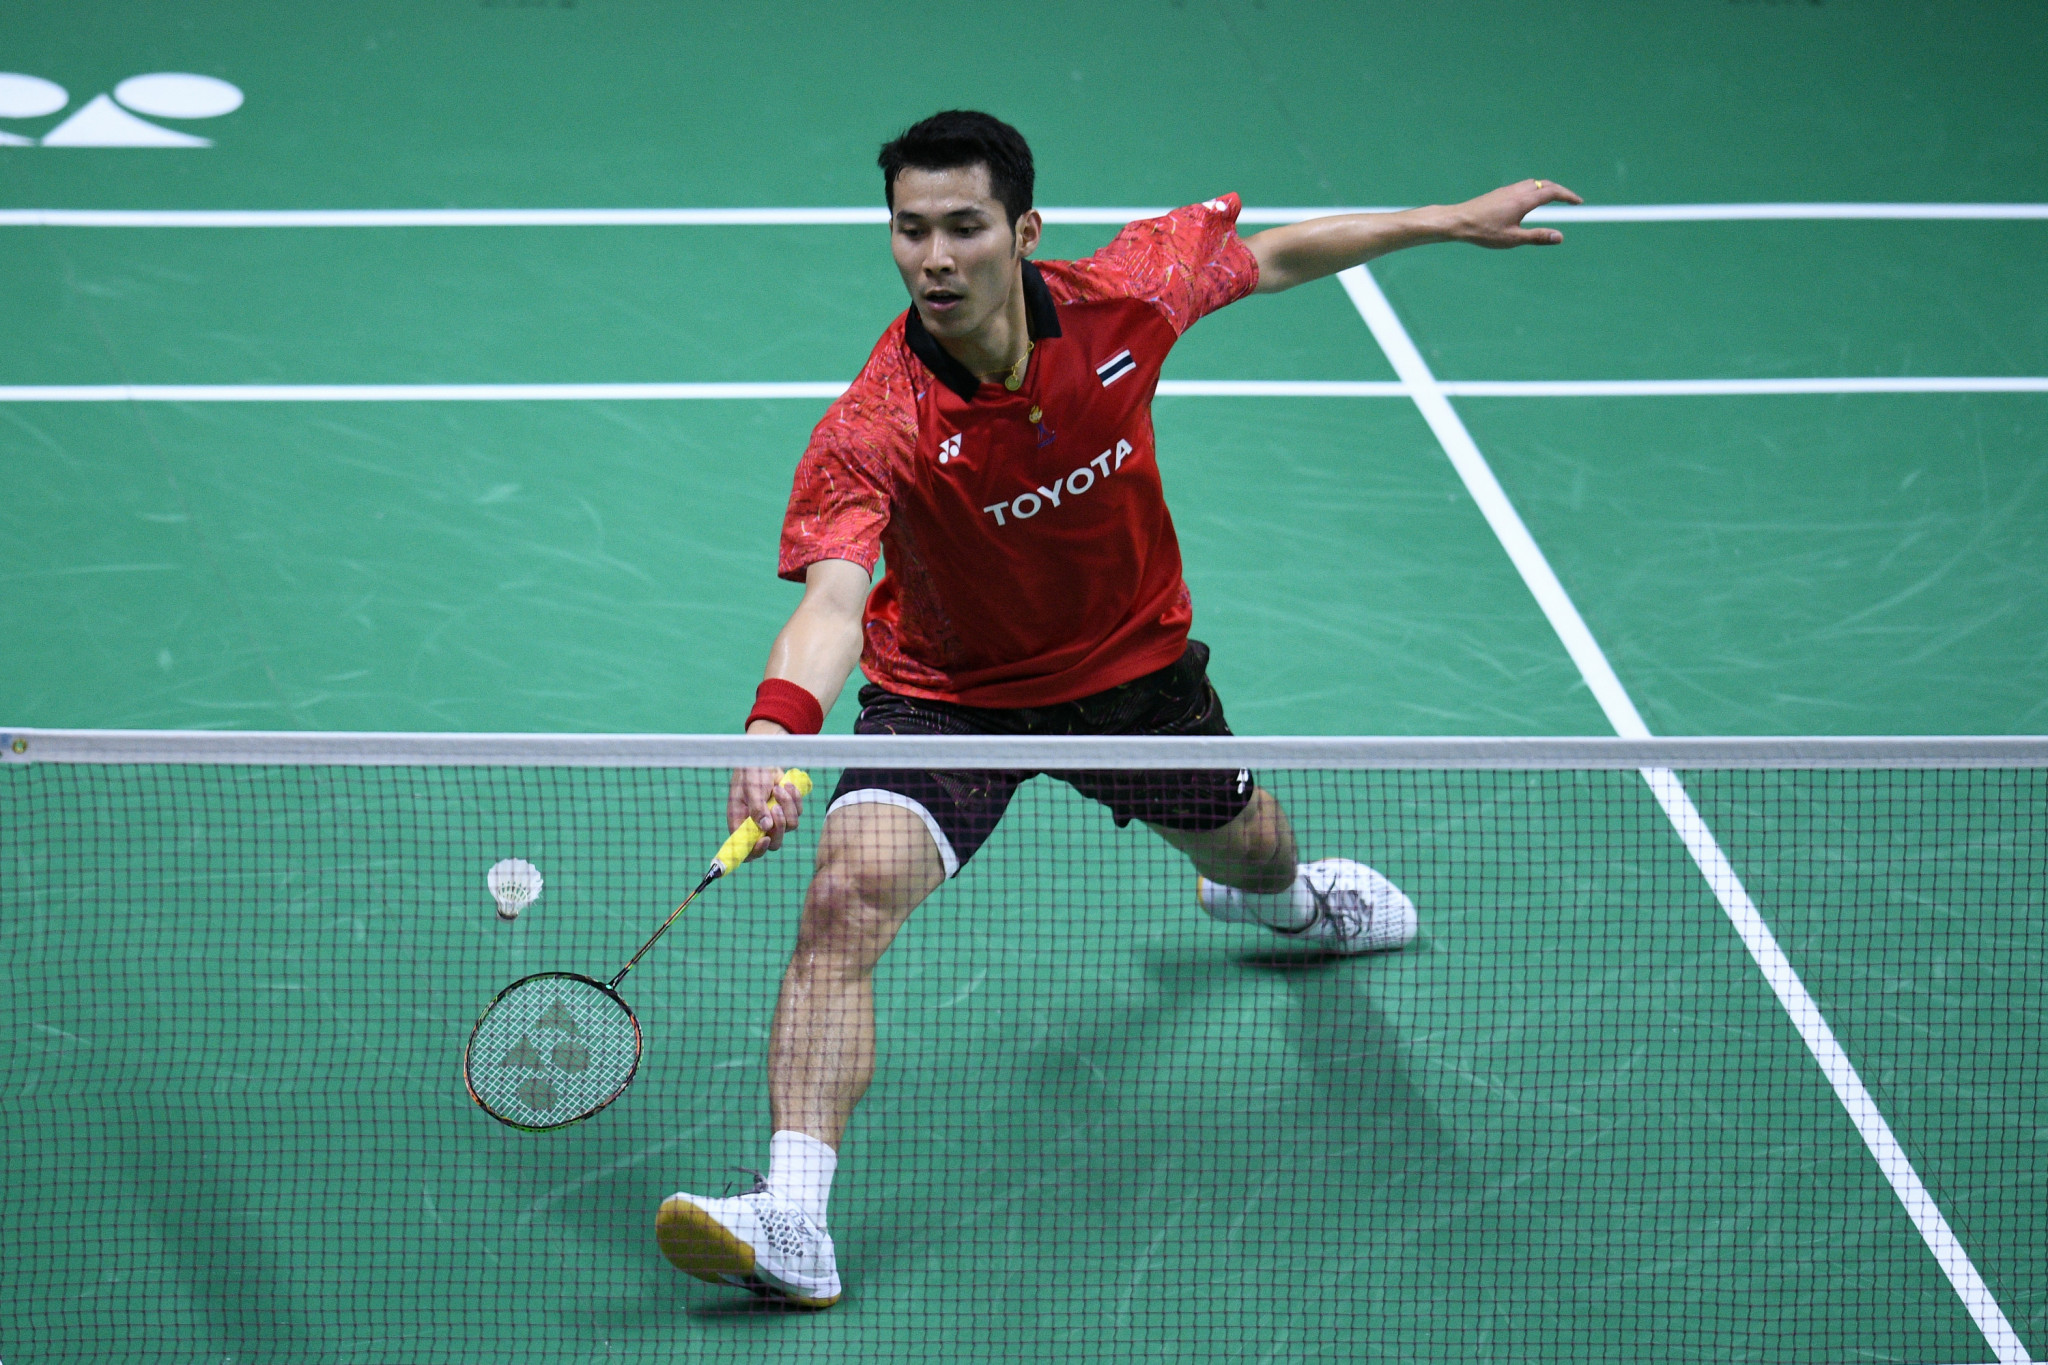 Top seed Avihingsanon reaches quarter-finals at BWF Spain Masters